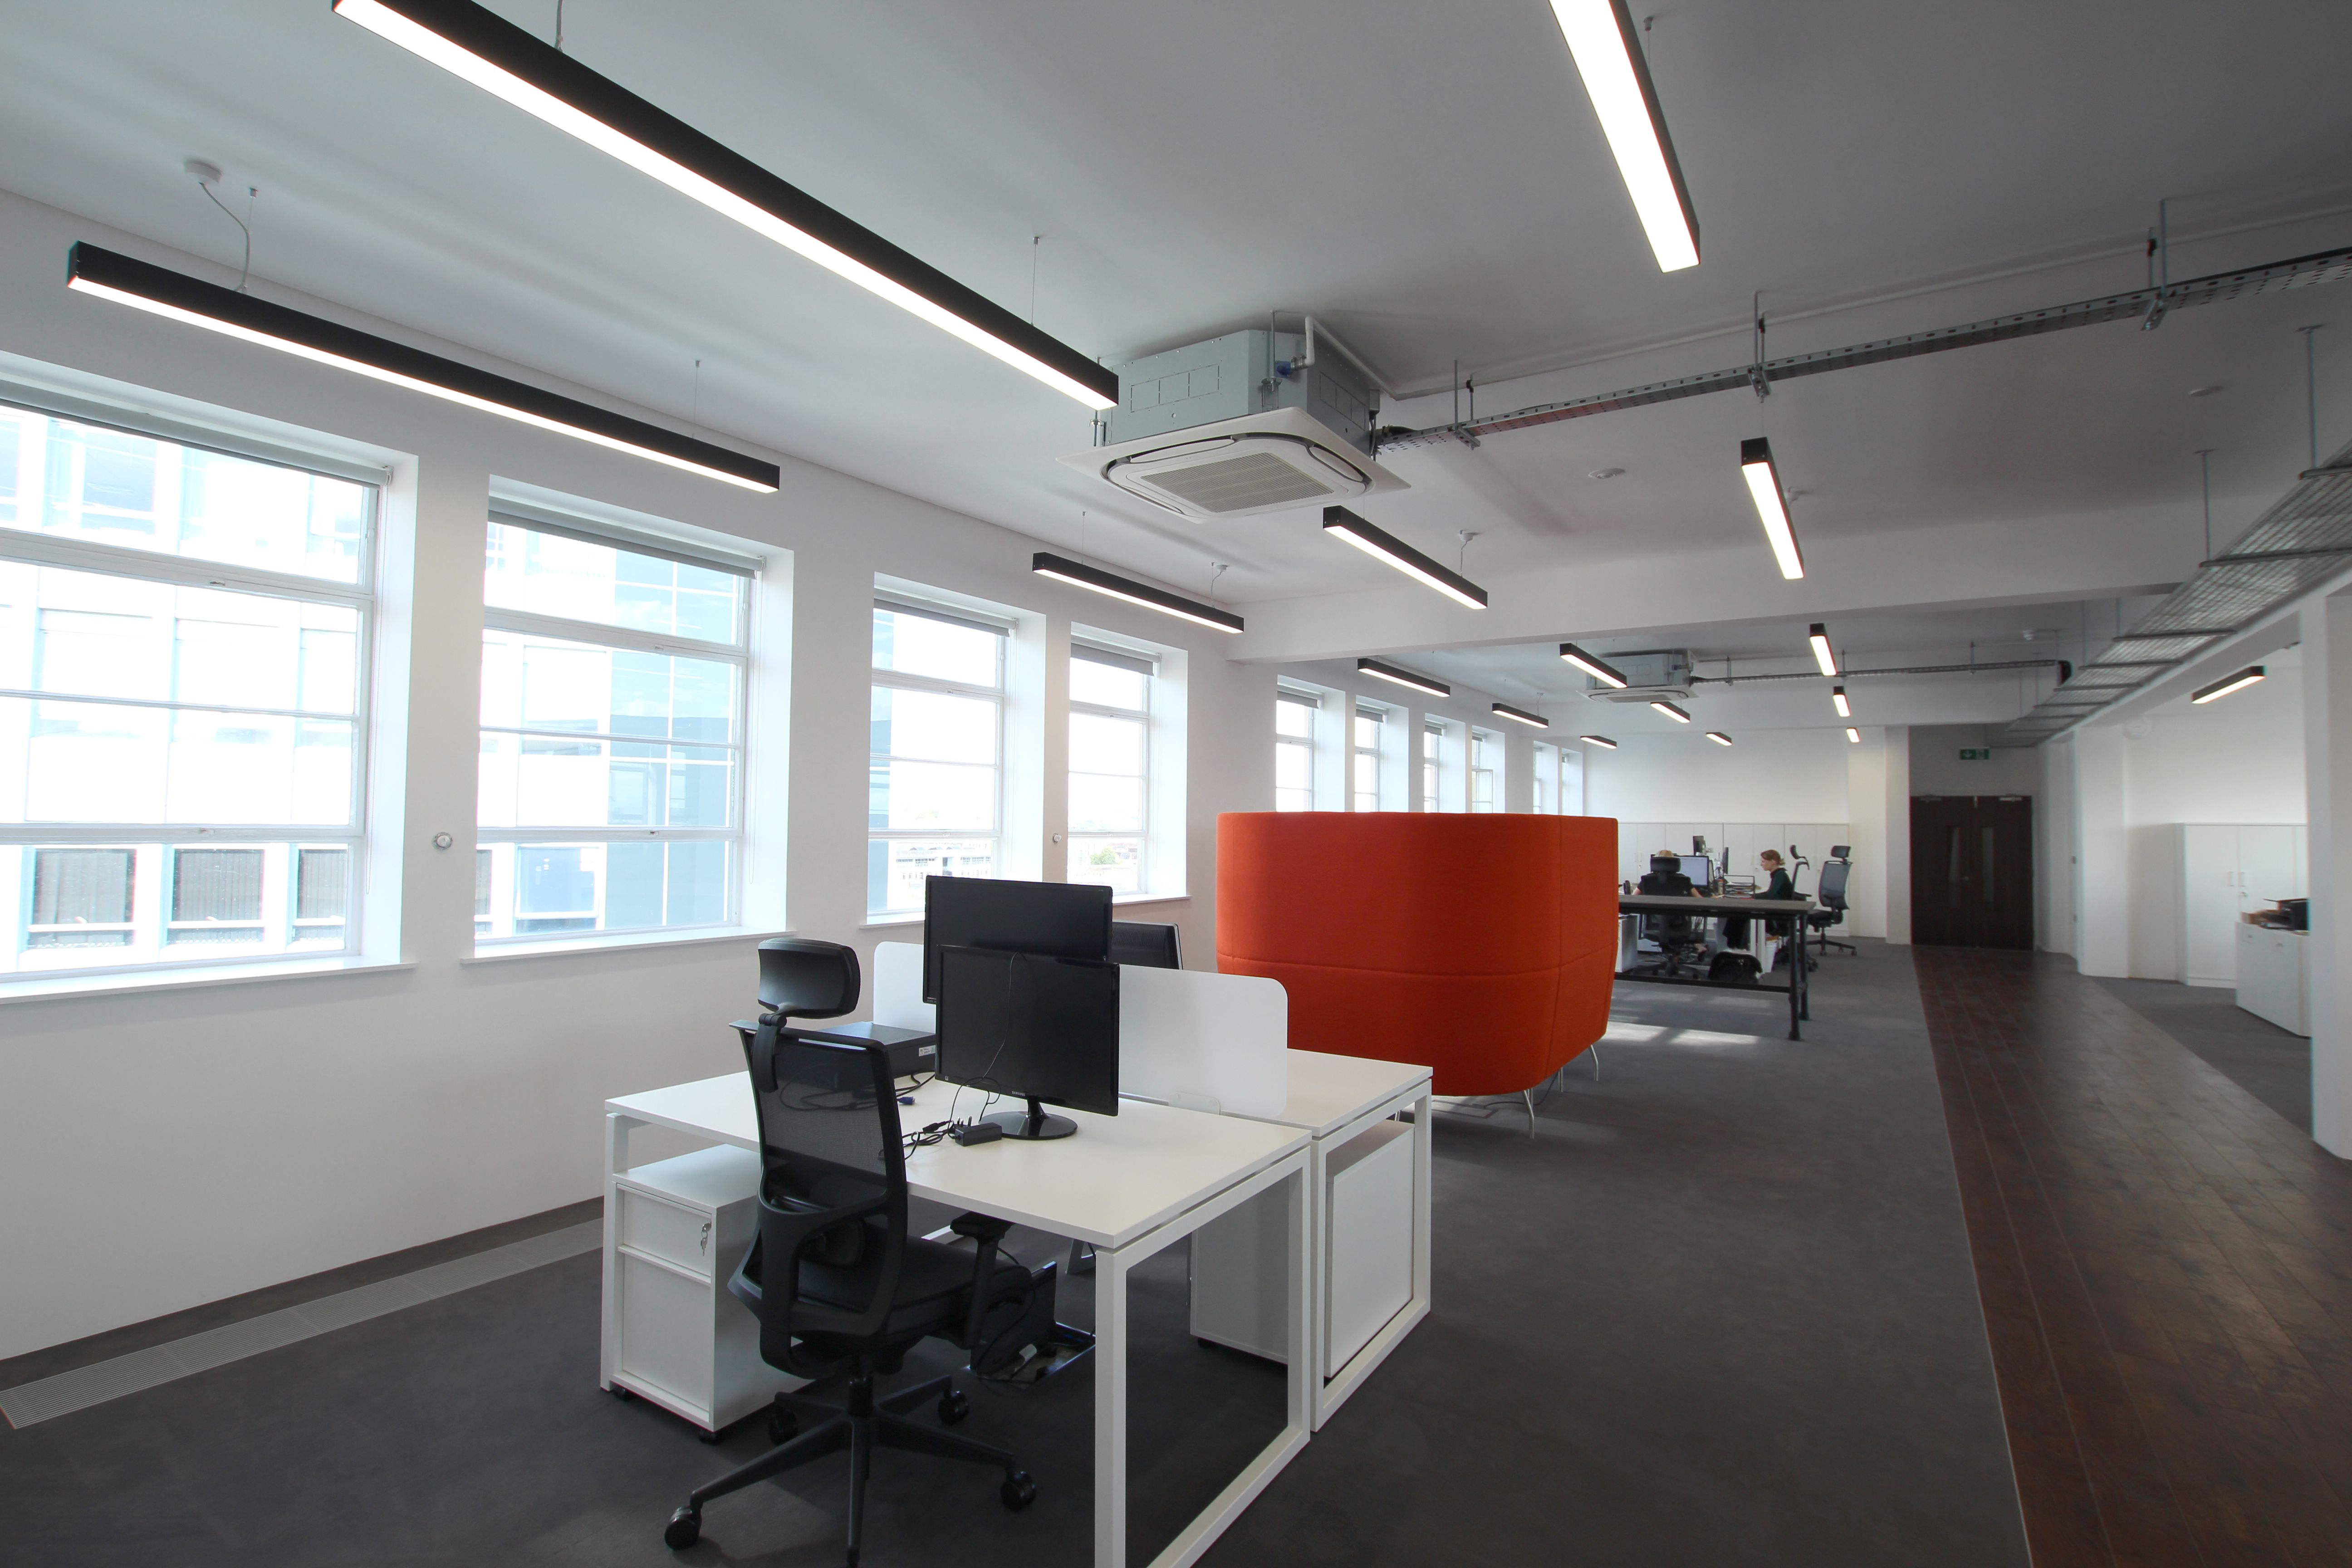 suspended office lighting. Custom Slim Linear LED Lighting For Office Refurbishment Suspended O